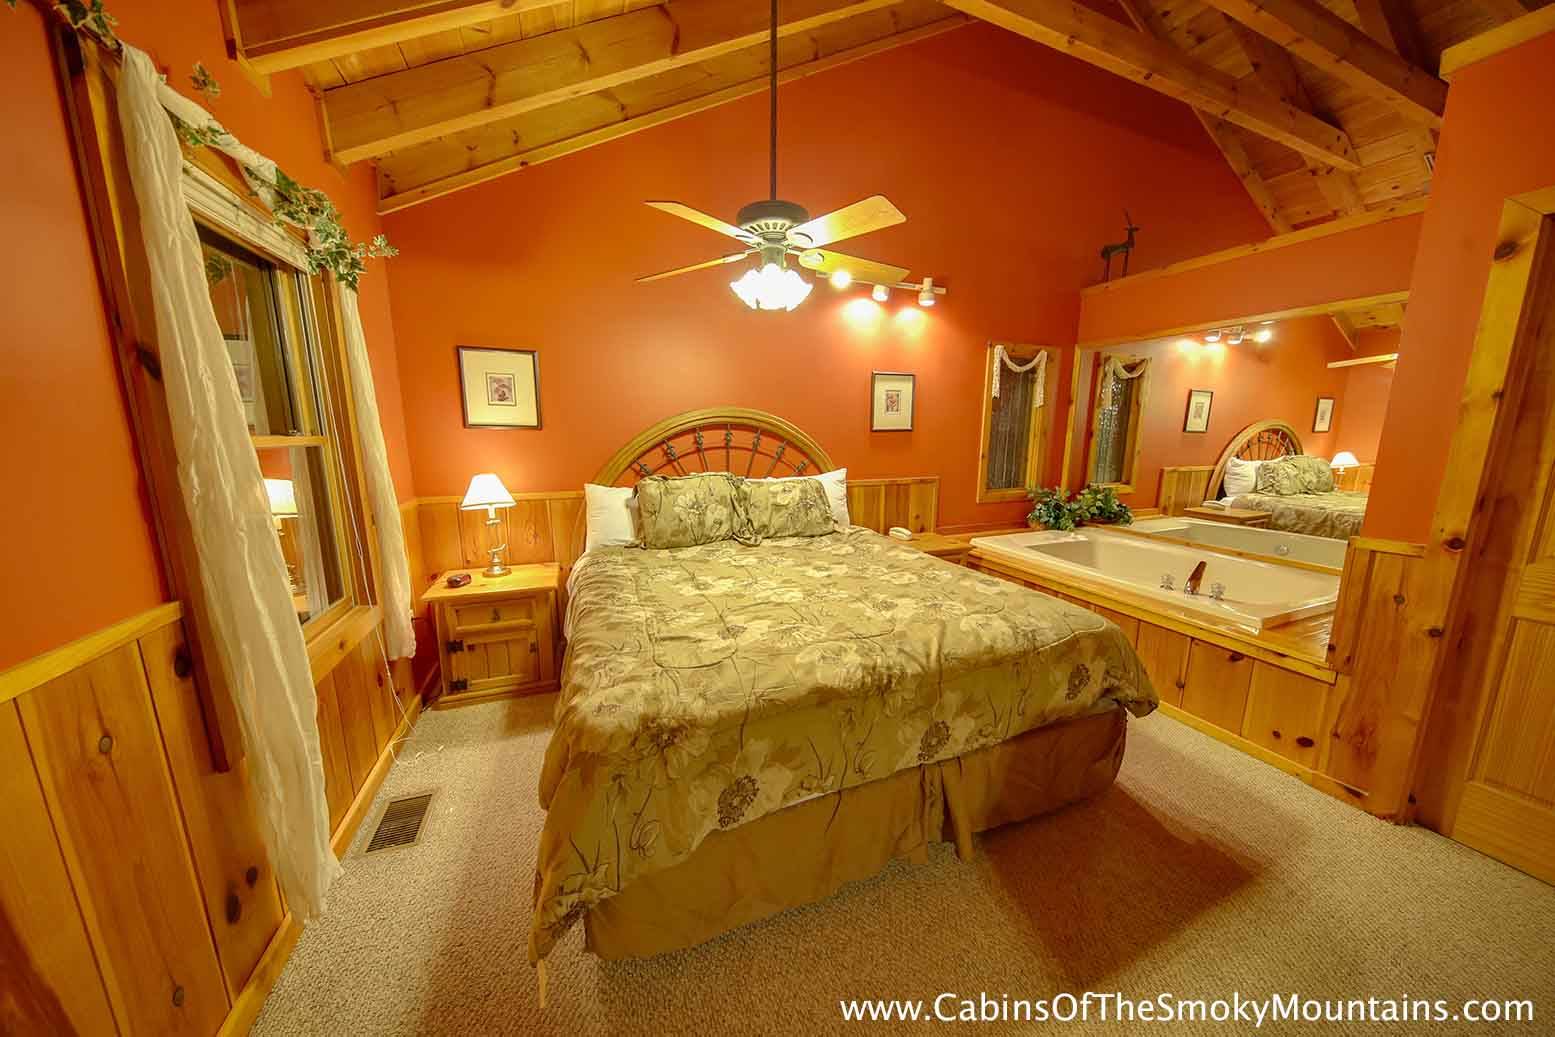 1 bedroom cabins in pigeon forge tn for 8 bedroom cabins in gatlinburg